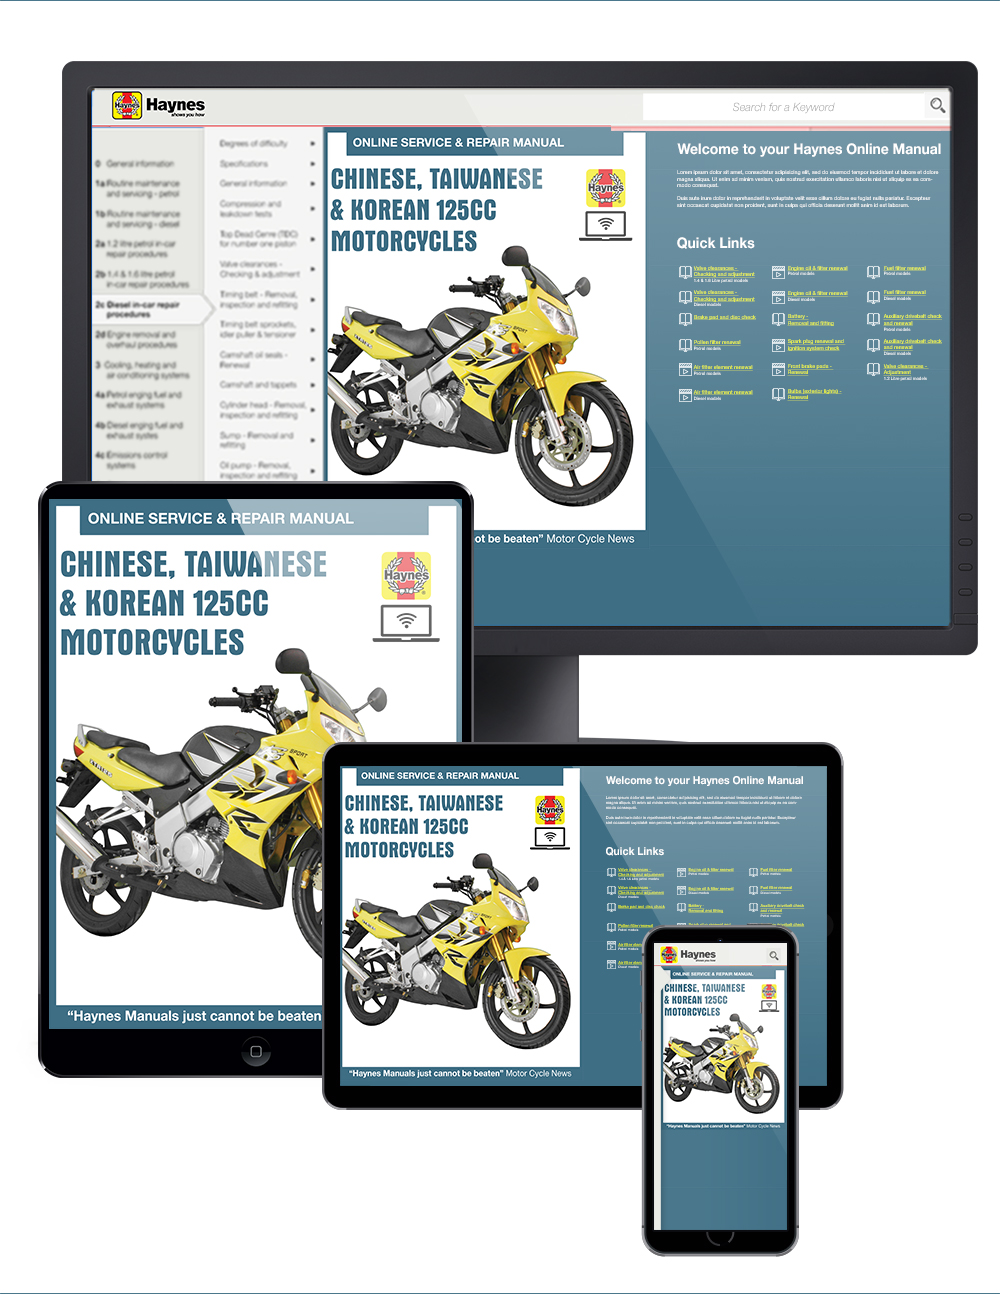 Manual cover for Chinese, Taiwanese & Korean 125cc Motorcycles Haynes Online Manual